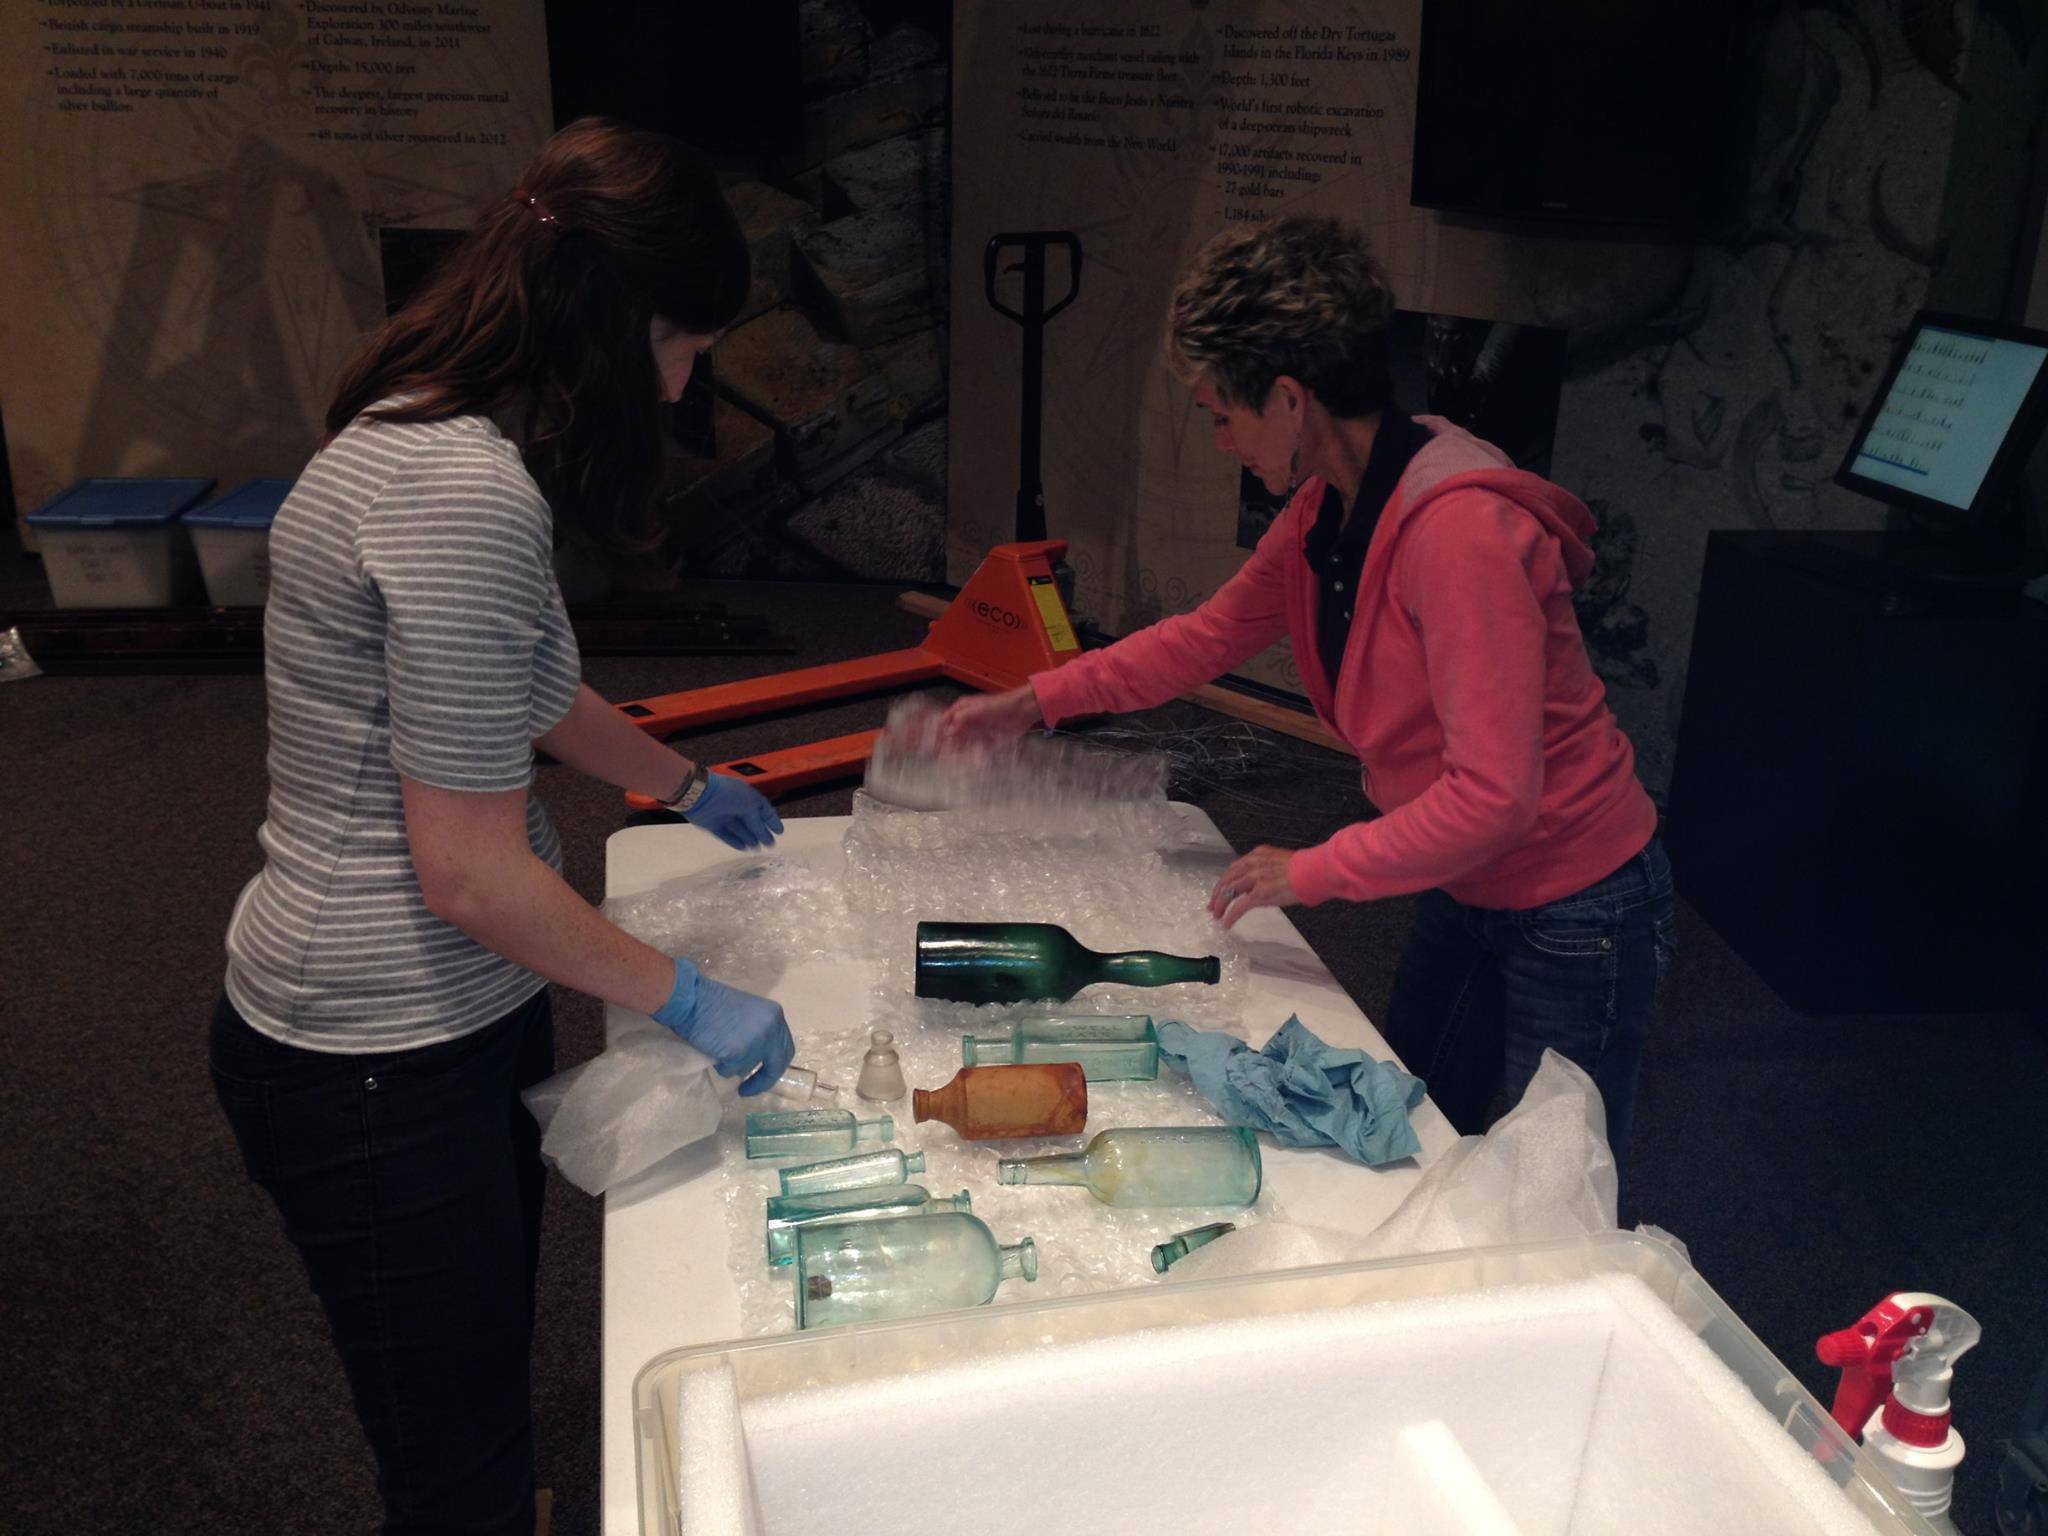 The department offers a graduate assistantship in exhibits at the Mayborn Museum. Students holding this position assist with the installation of temporary exhibits.